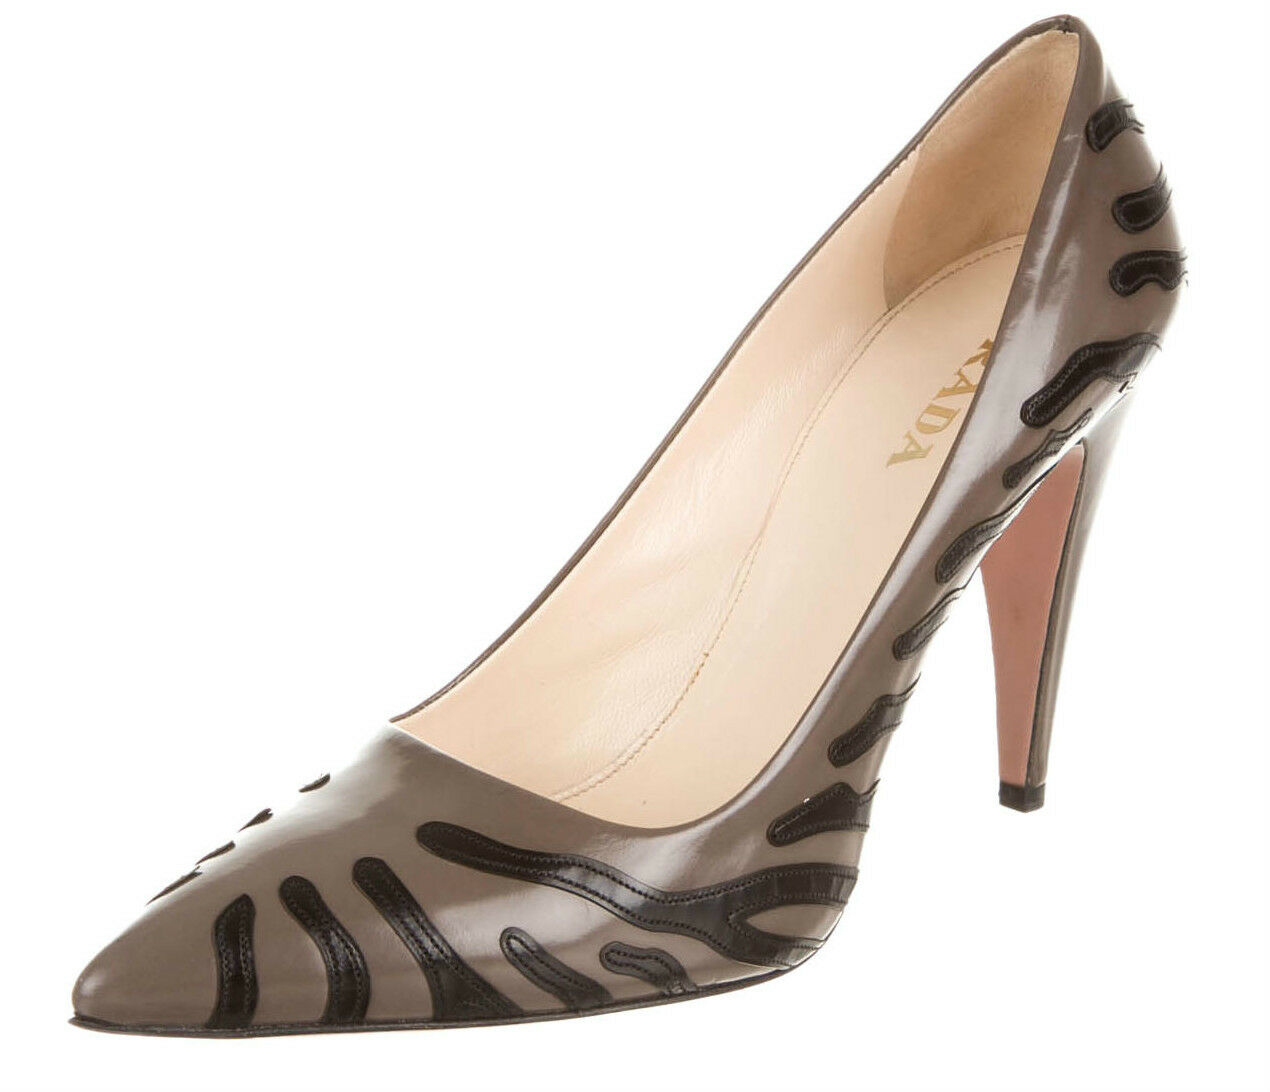 PRADA Grey Animal Print Leather Heel SZ 36 = US 5.5-6 NWOB